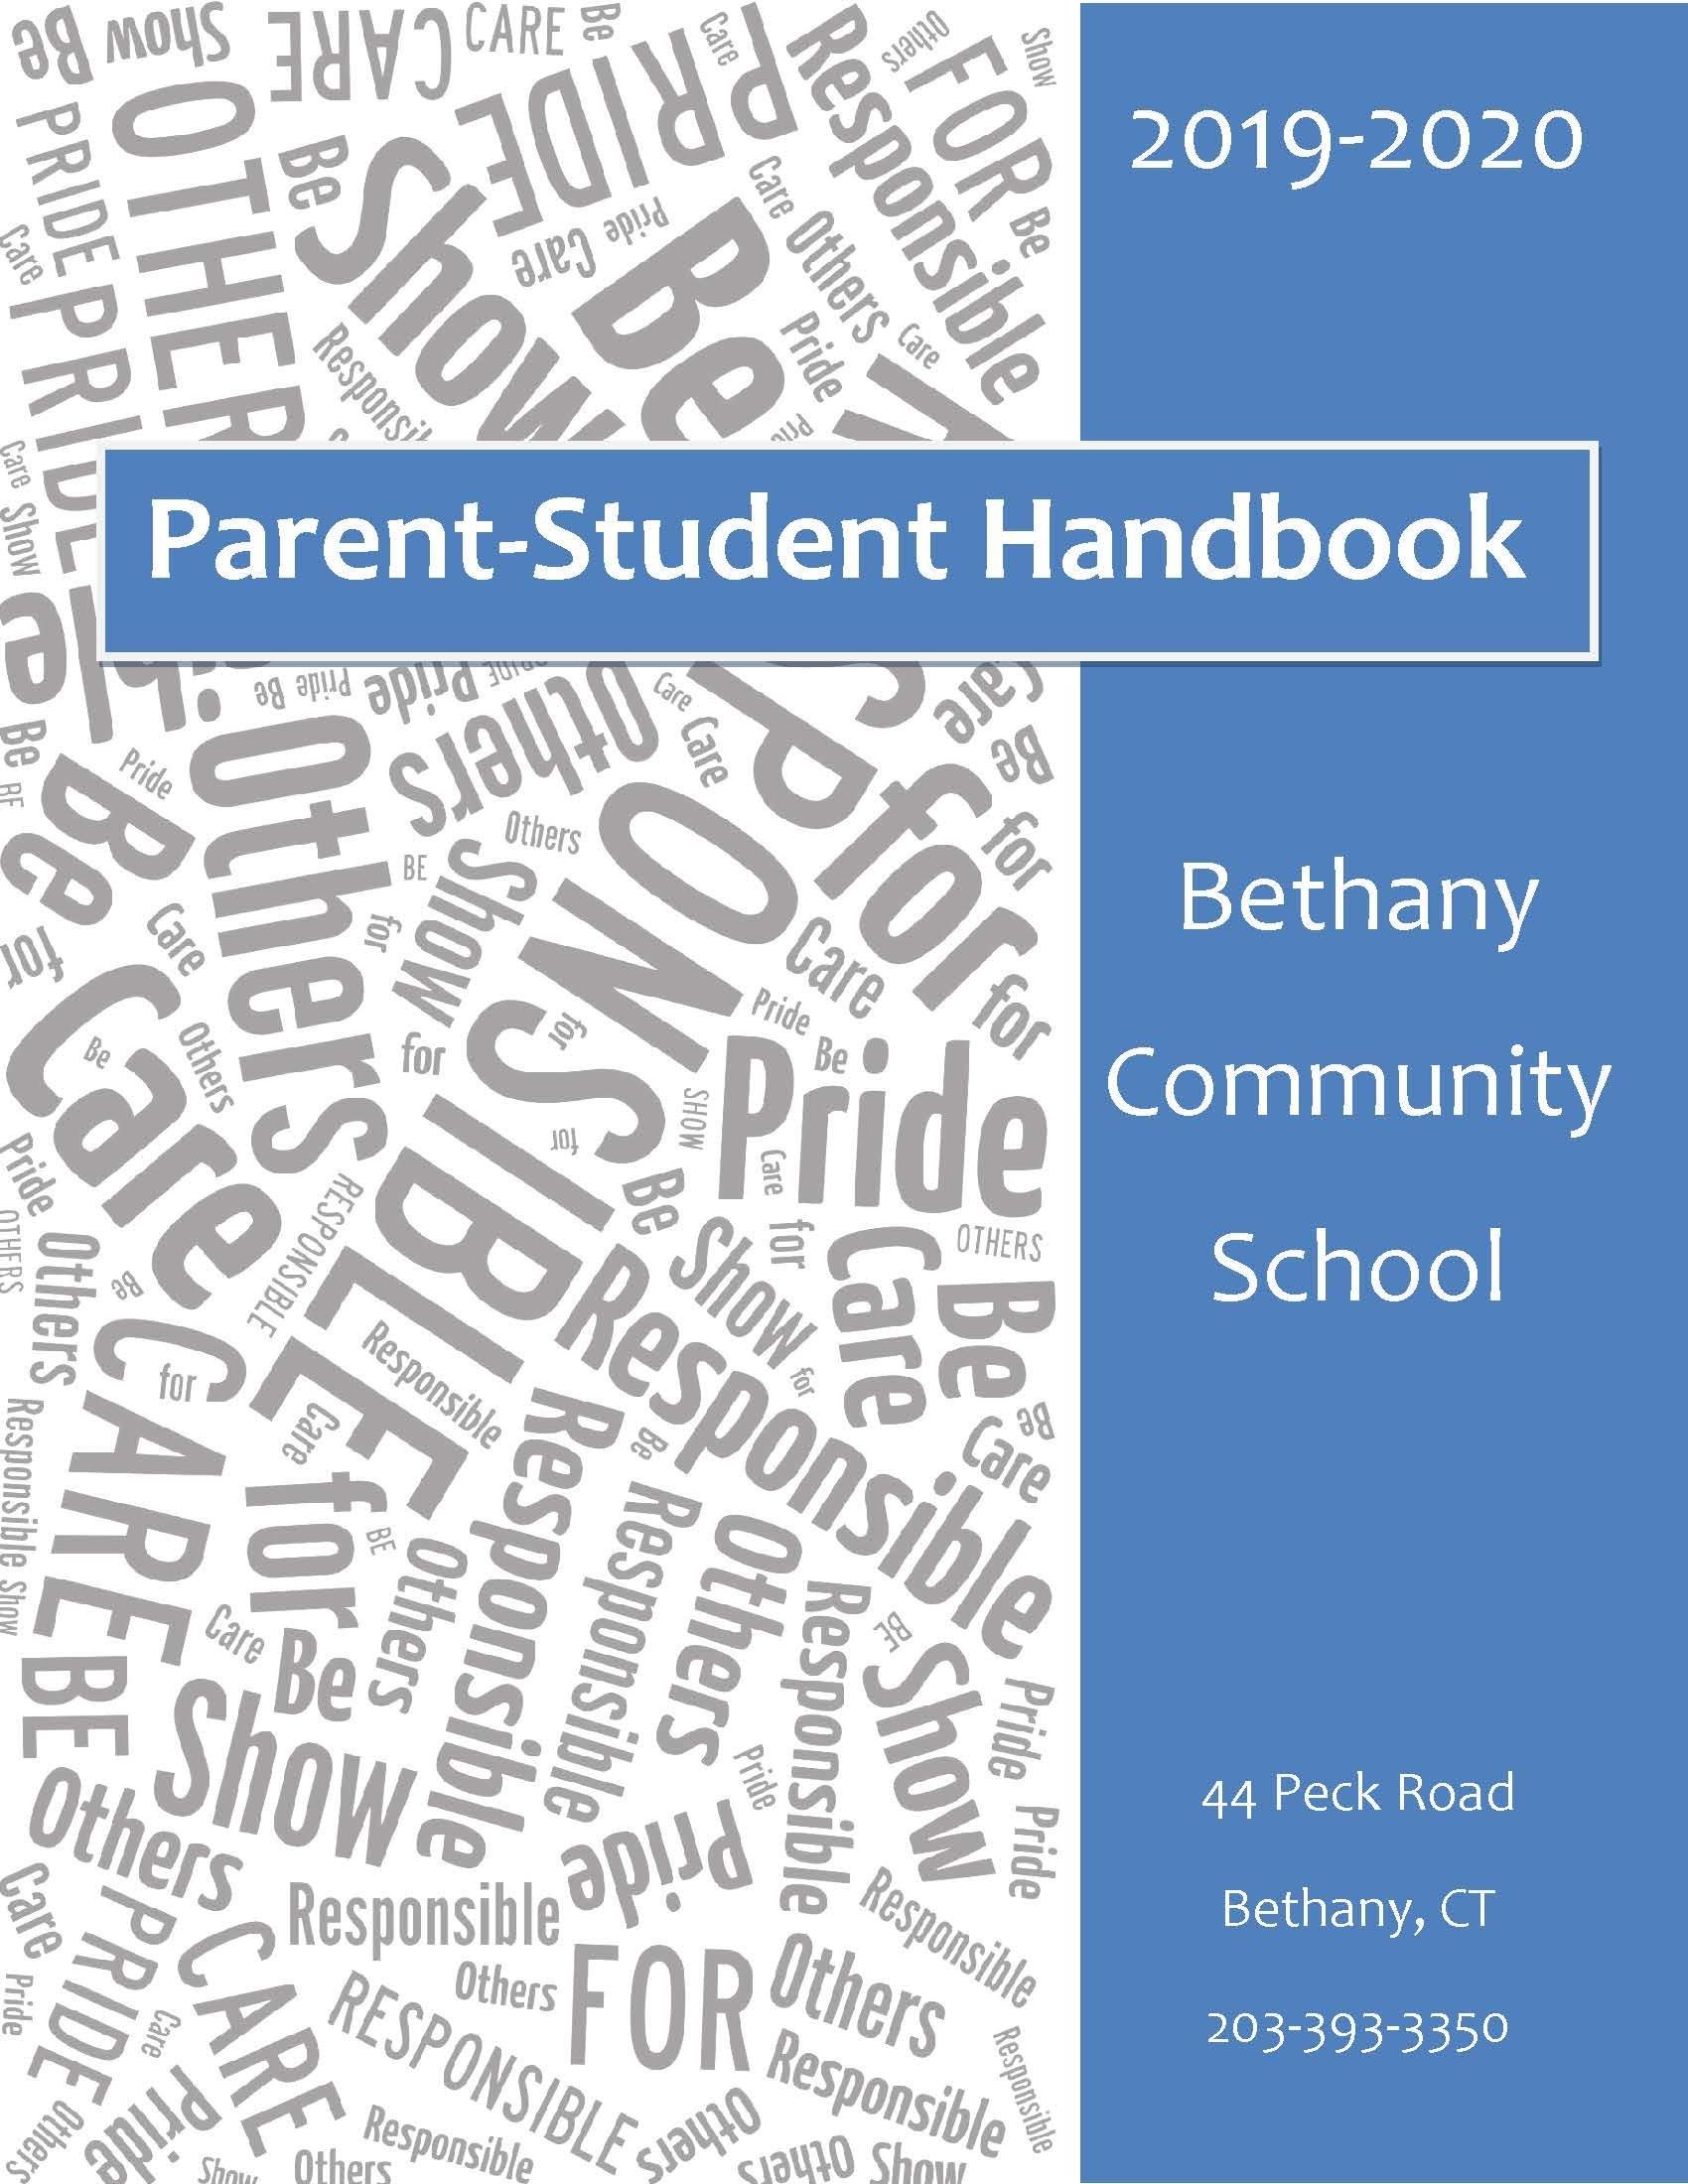 Image of the cover of the 2019-2020 Parent-Student Handbook